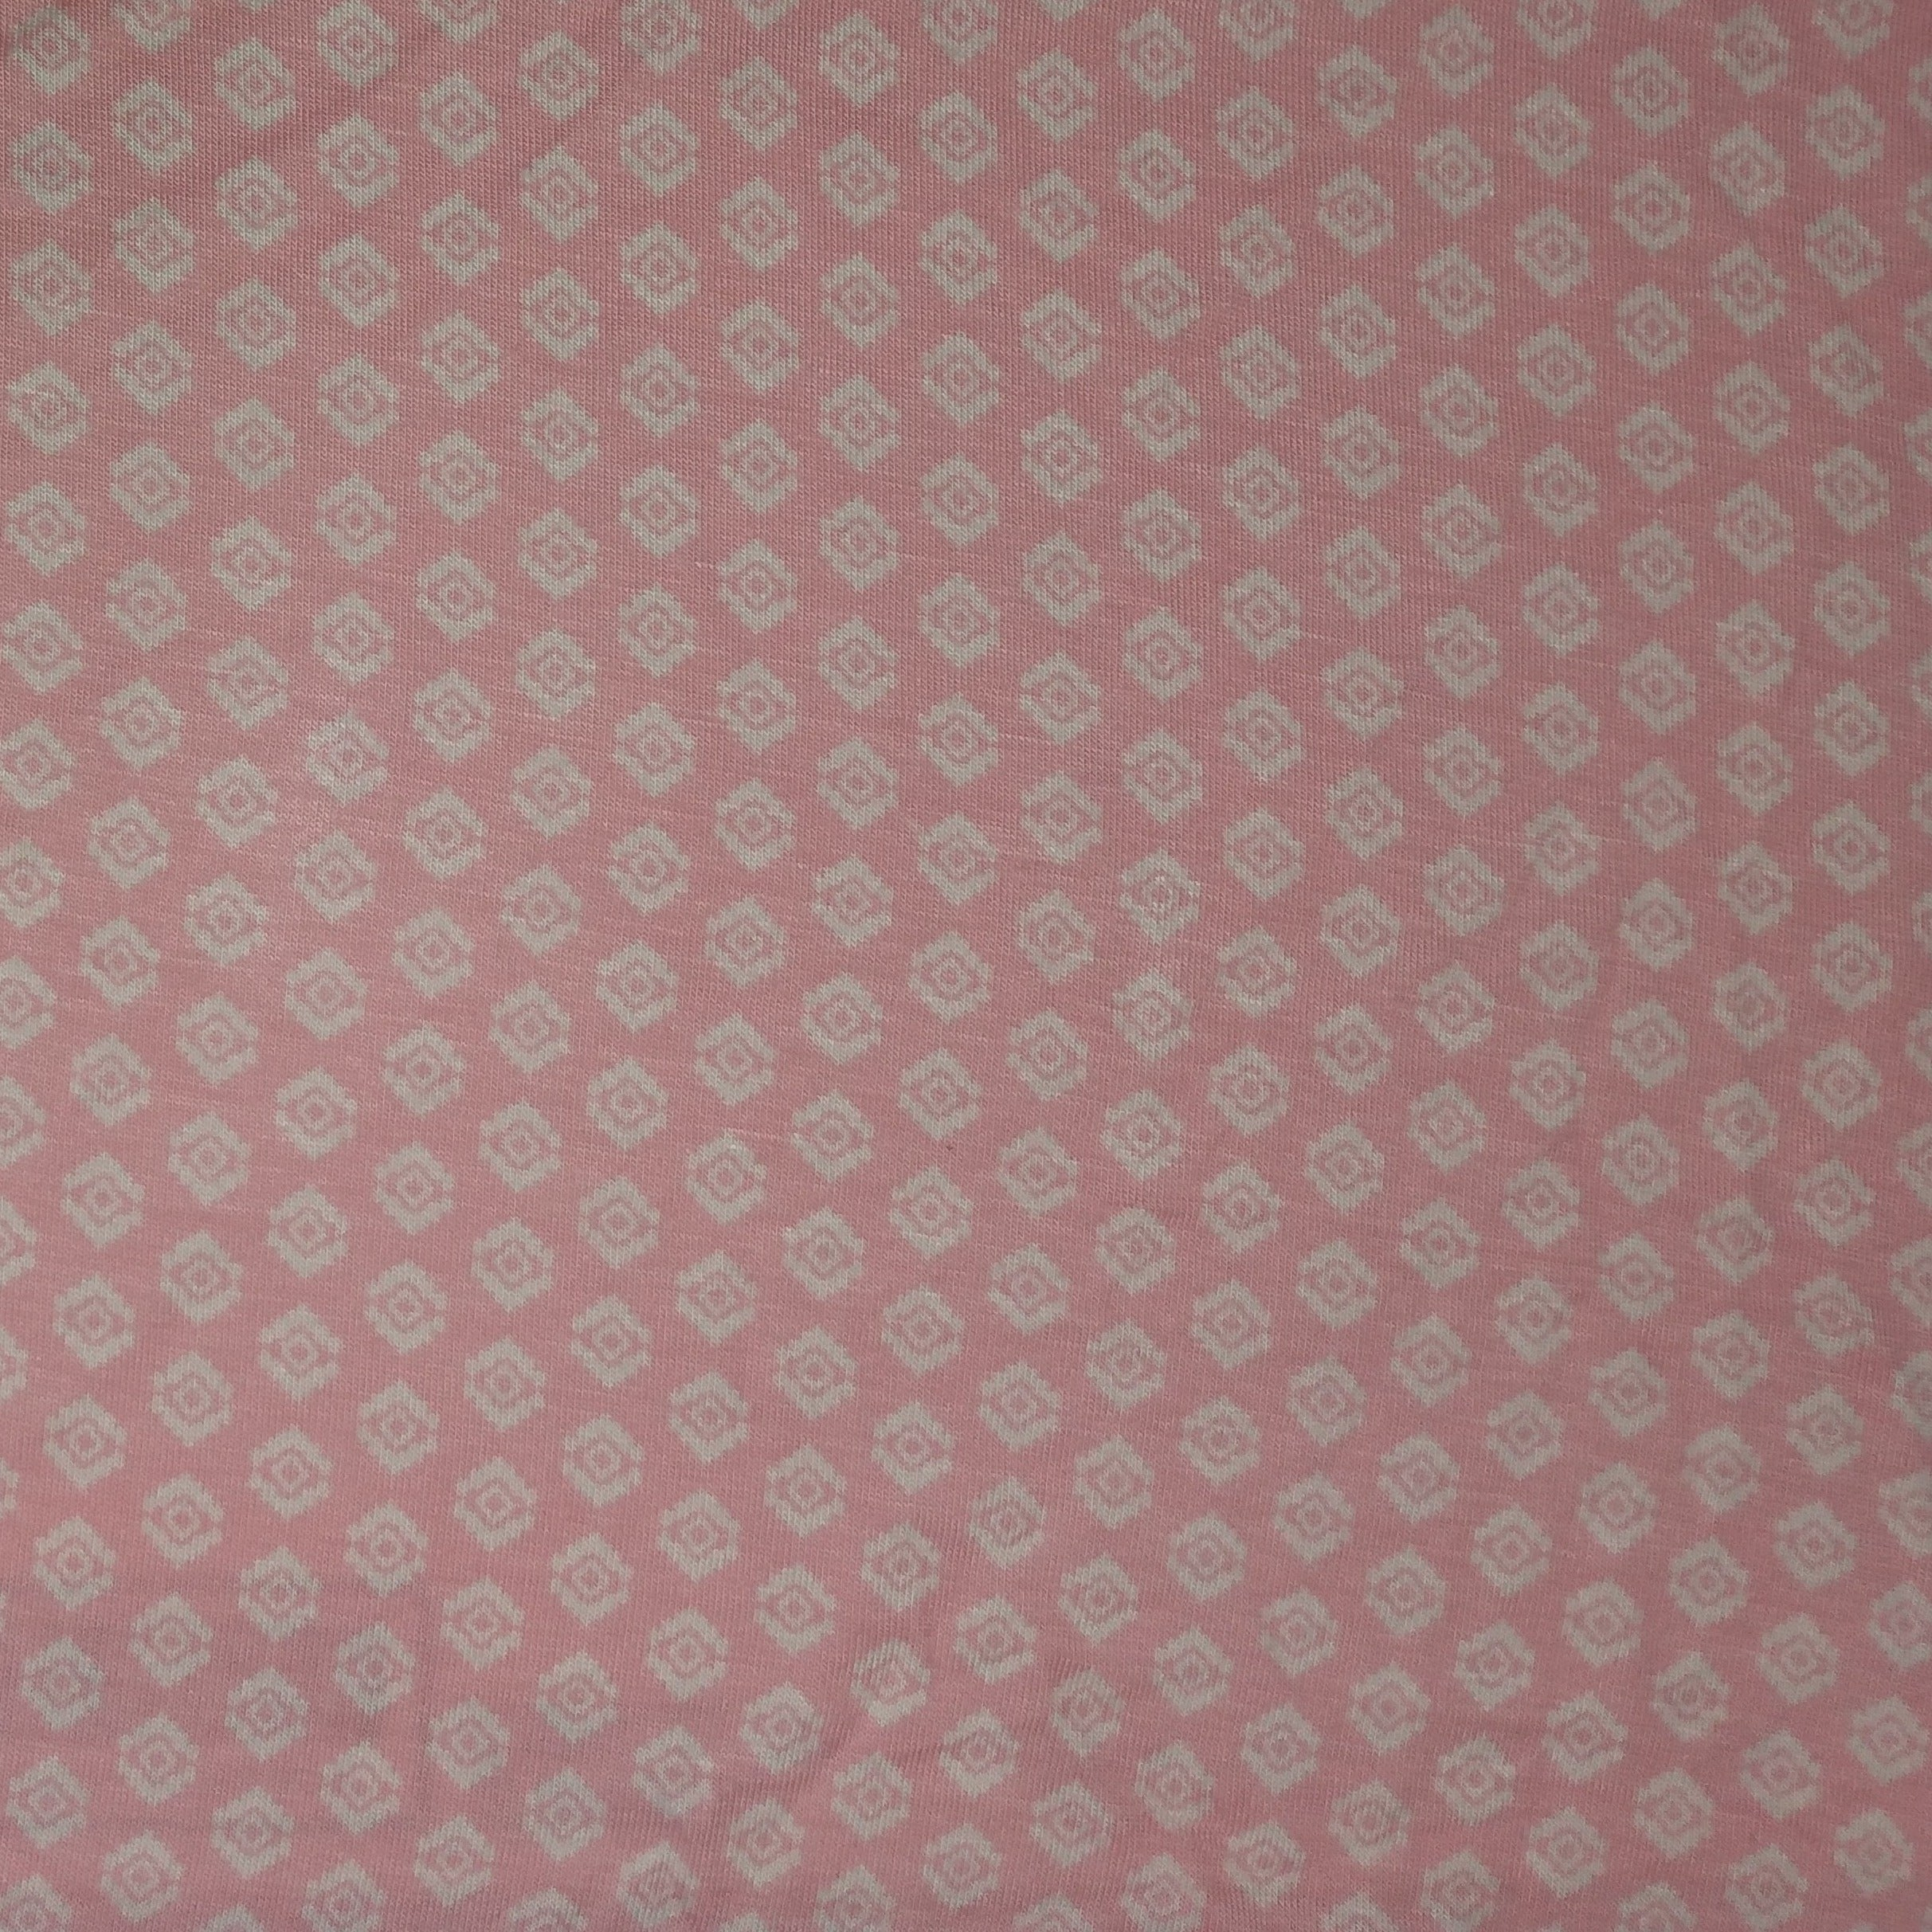 LAK  -  Rayon Spandex  -  Pink Diamonds